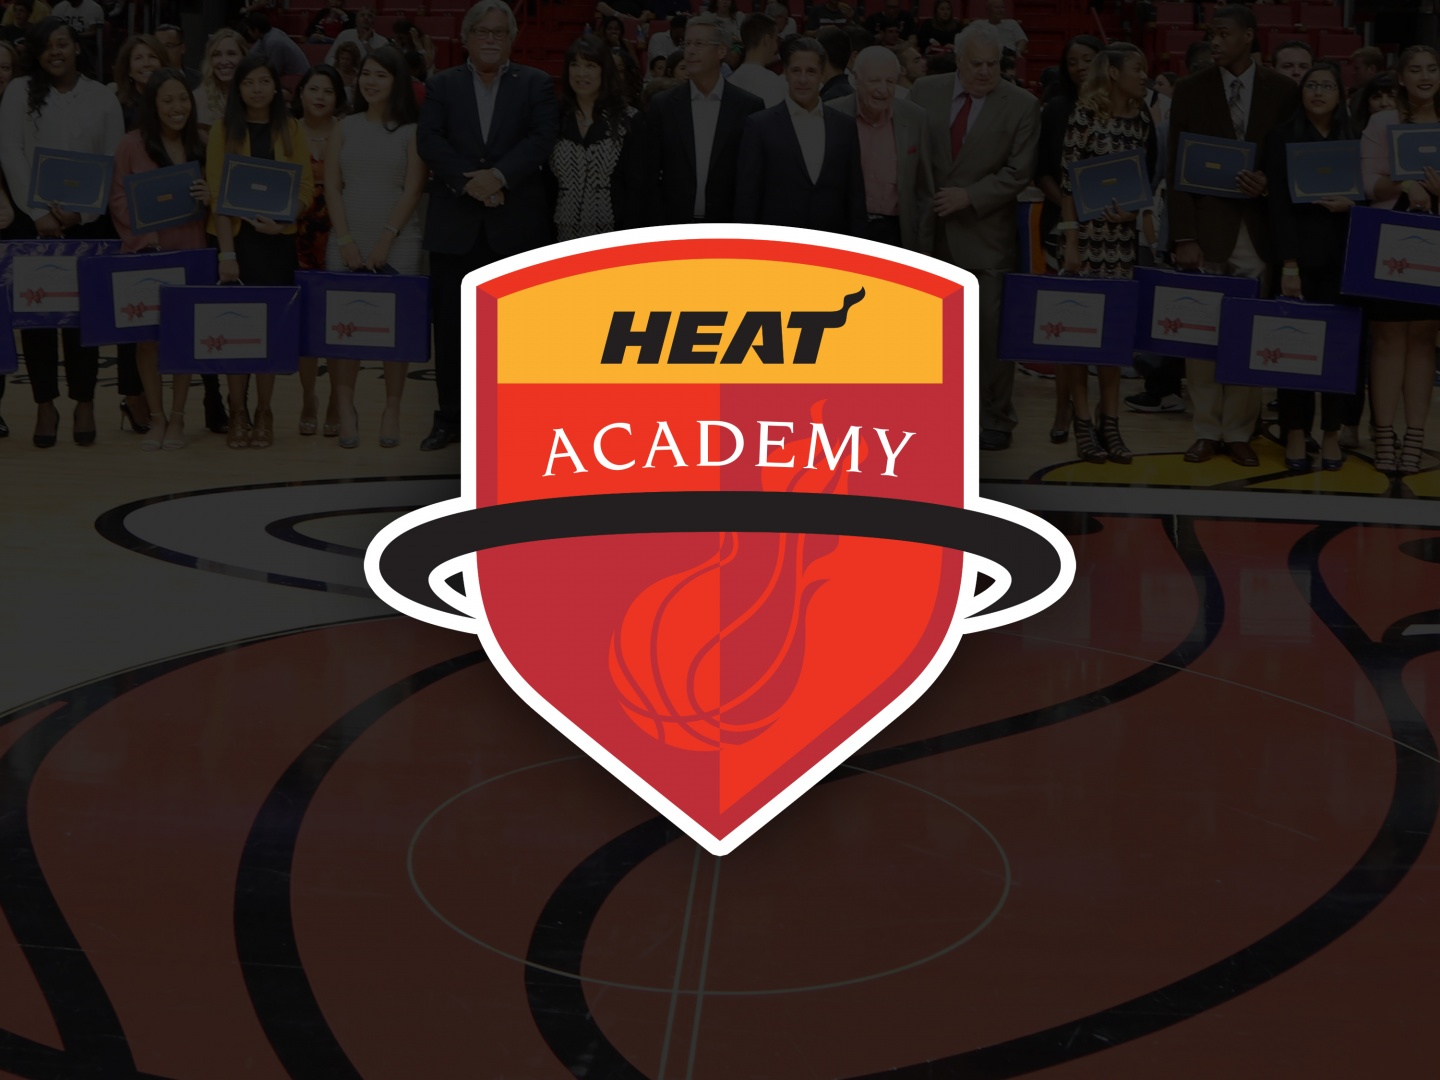 HEAT Academy / Carnival Scholarship Program Thumbnail